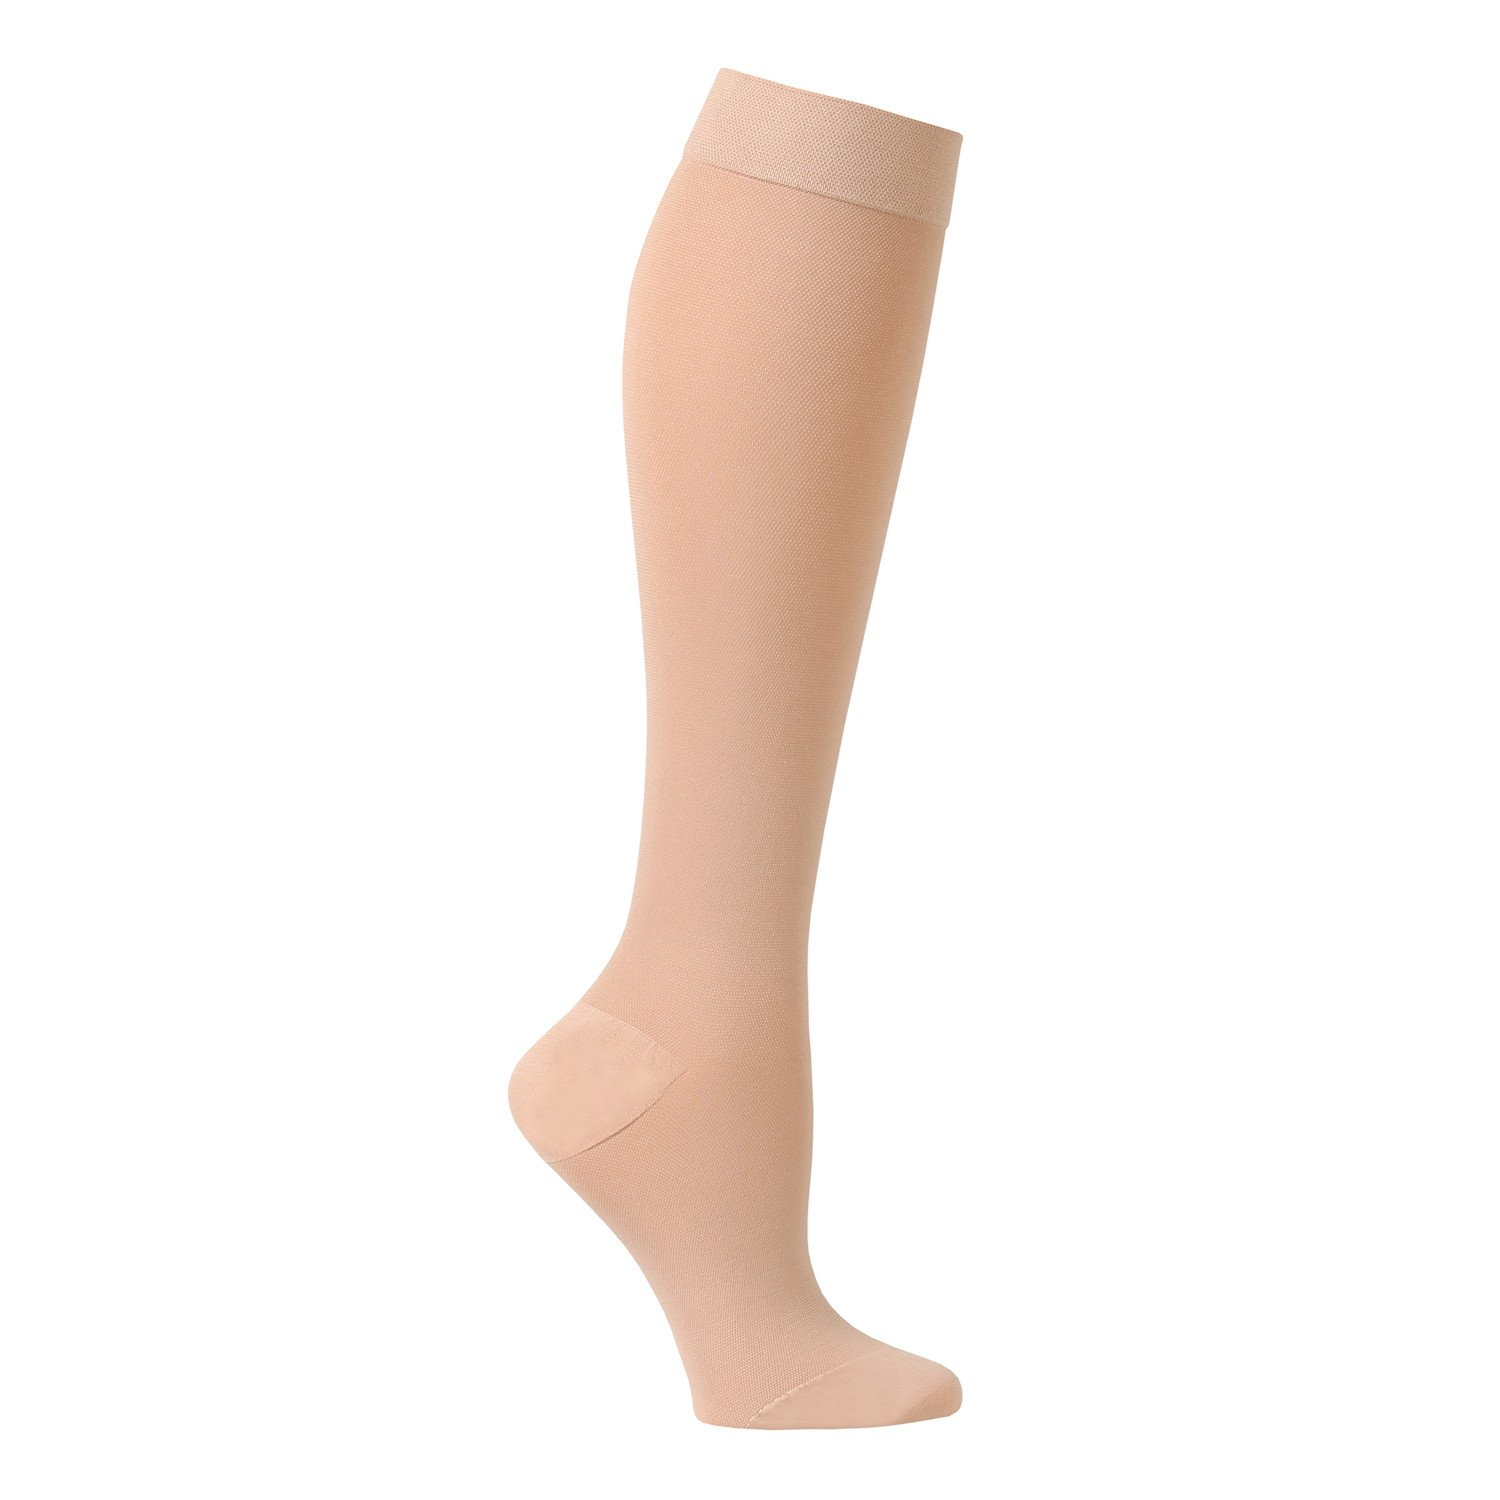 Support Plus Women's Firm Compression Hose - Opaque Knee High, Petite Stockings - Beige - Small